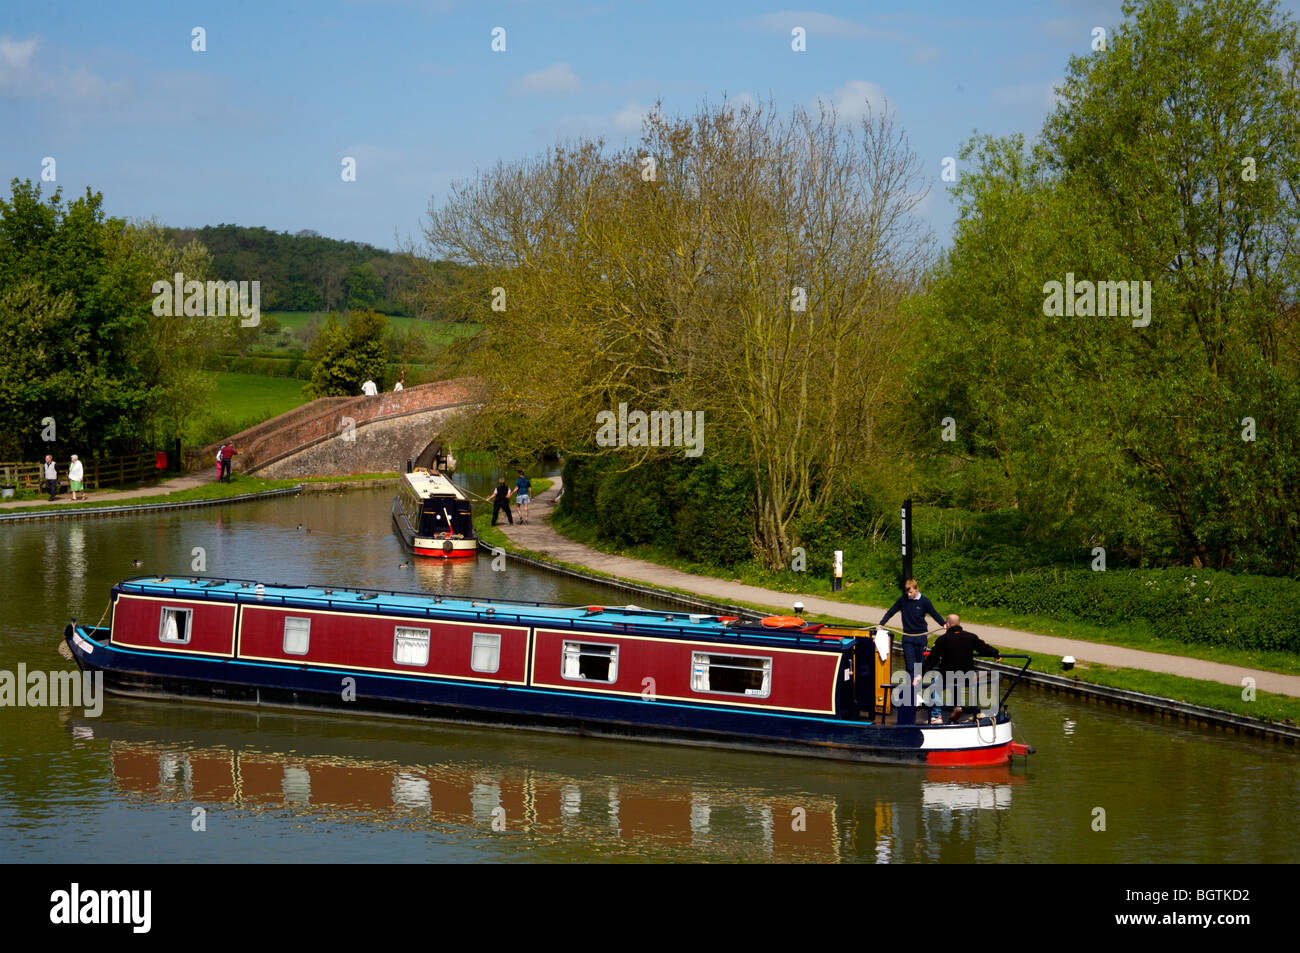 Grand Union Canal (Leicester branch) near Foxton Locks. - Stock Image